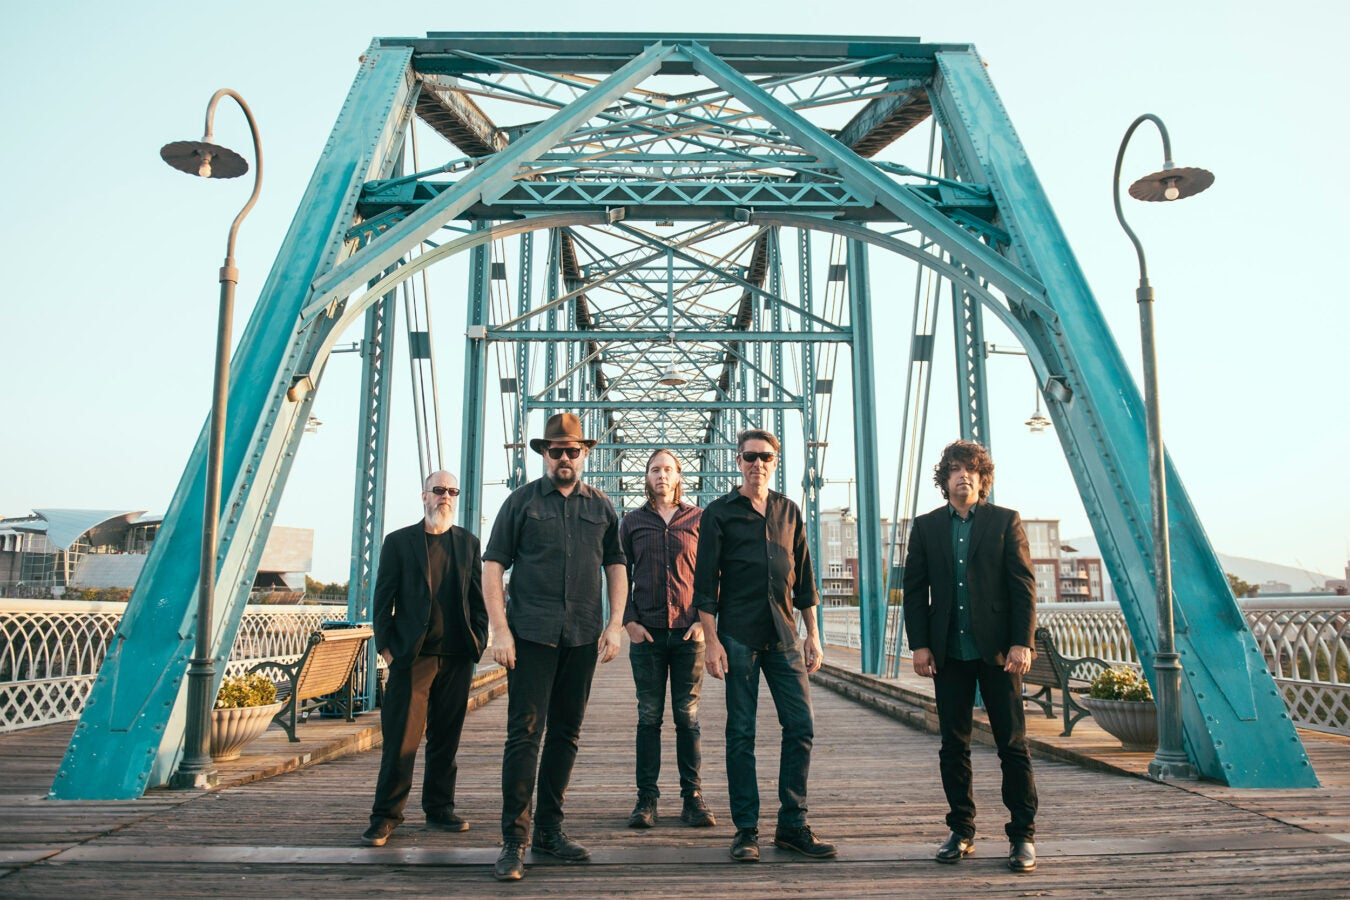 Music group Drive-By Truckers pictured on a bridge.